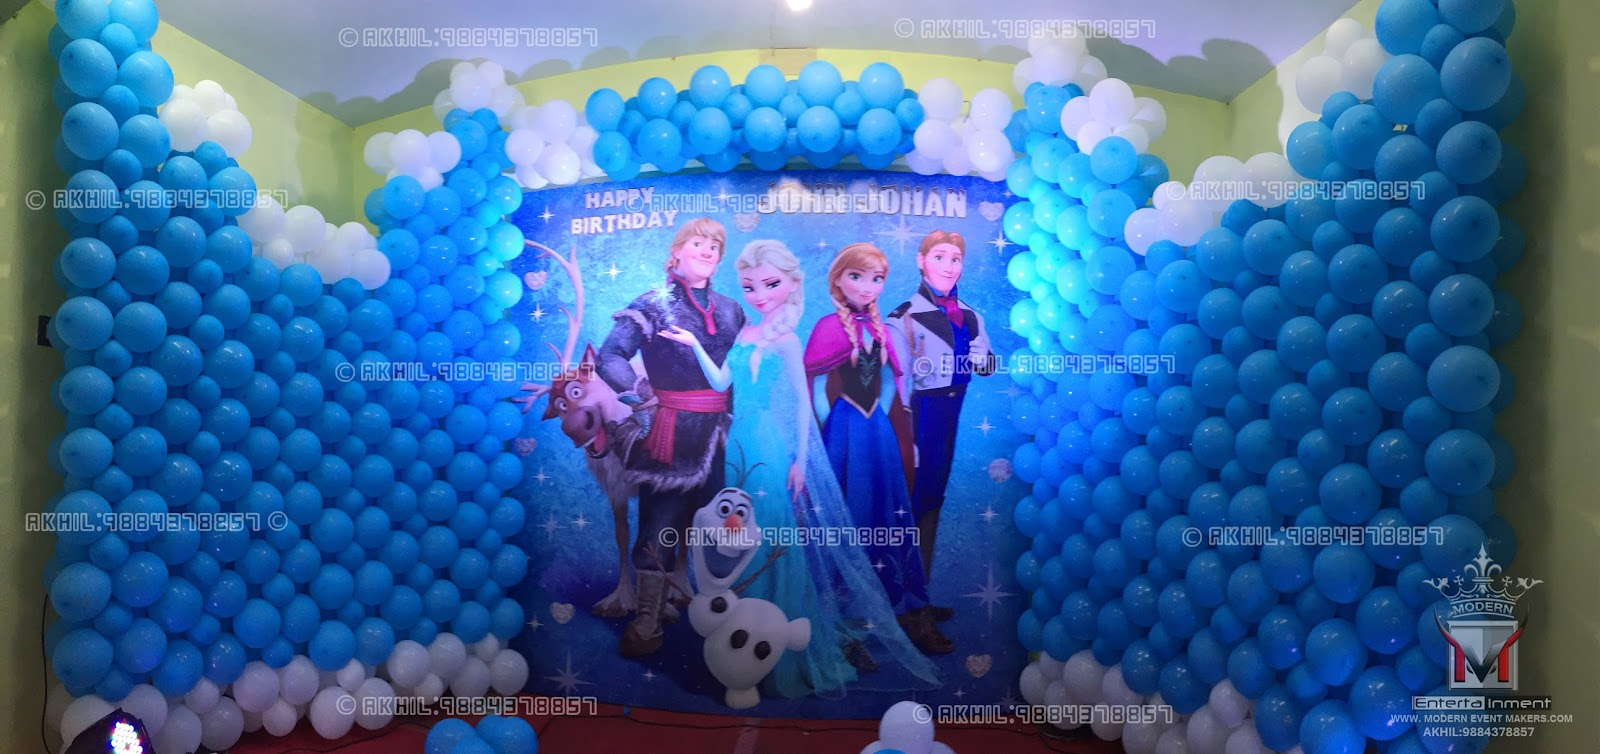 Frozen themed party balloons images for Balloon decoration companies